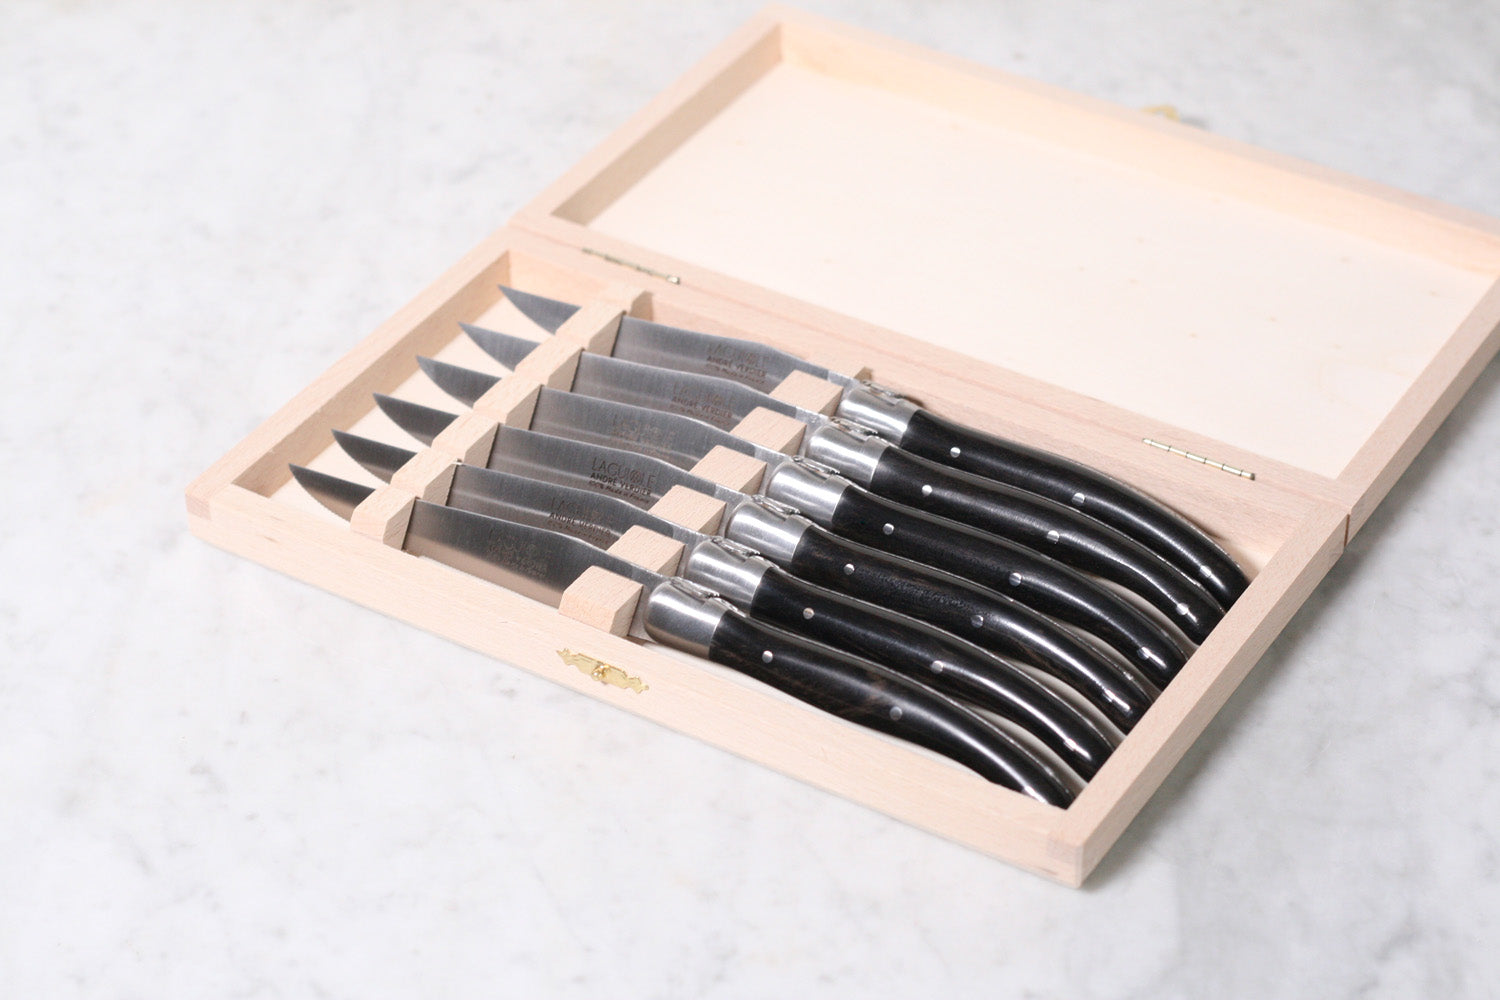 Deluxe Laguiole Steak Knives Ebony